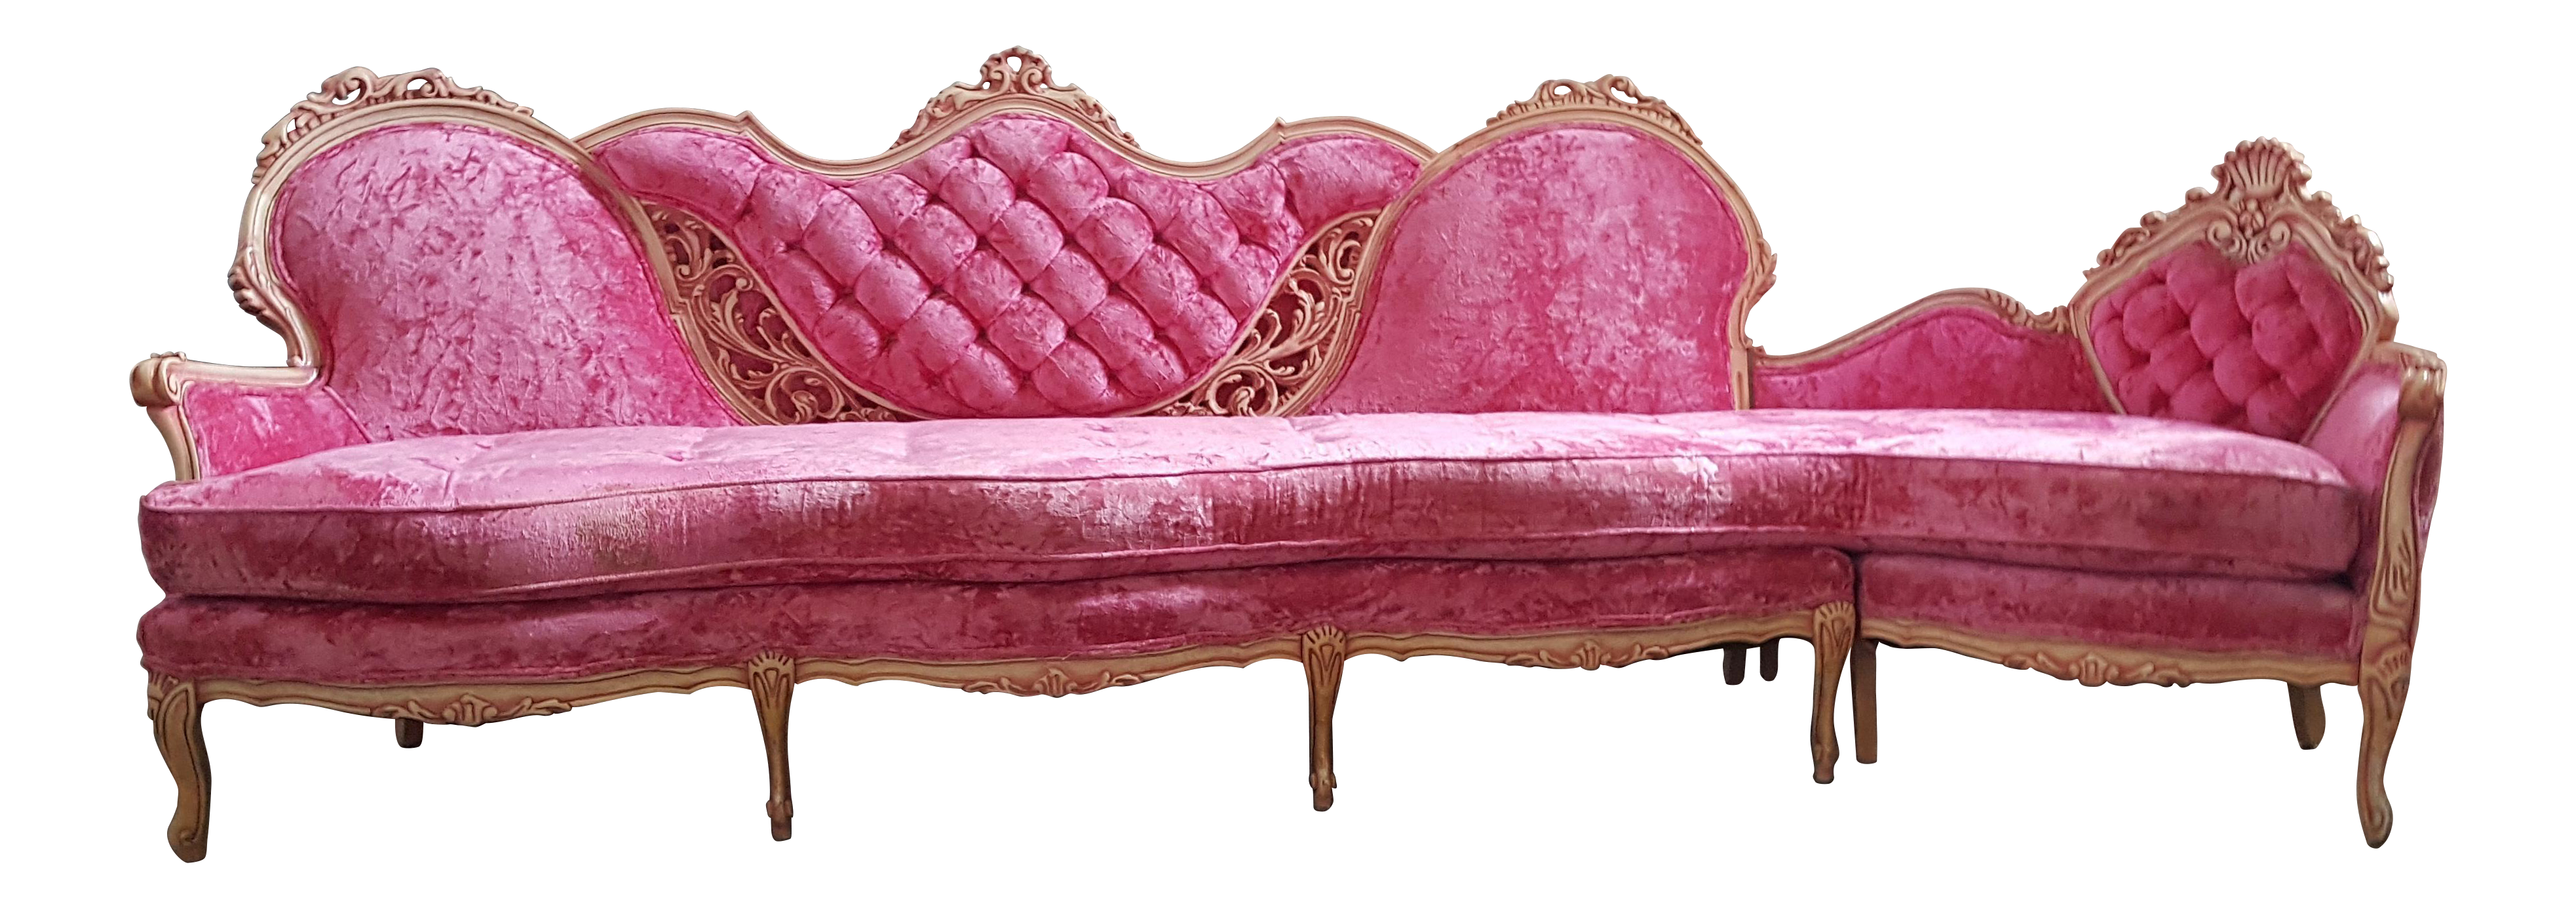 Pinkes sofa gallery of. Couch clipart pink couch